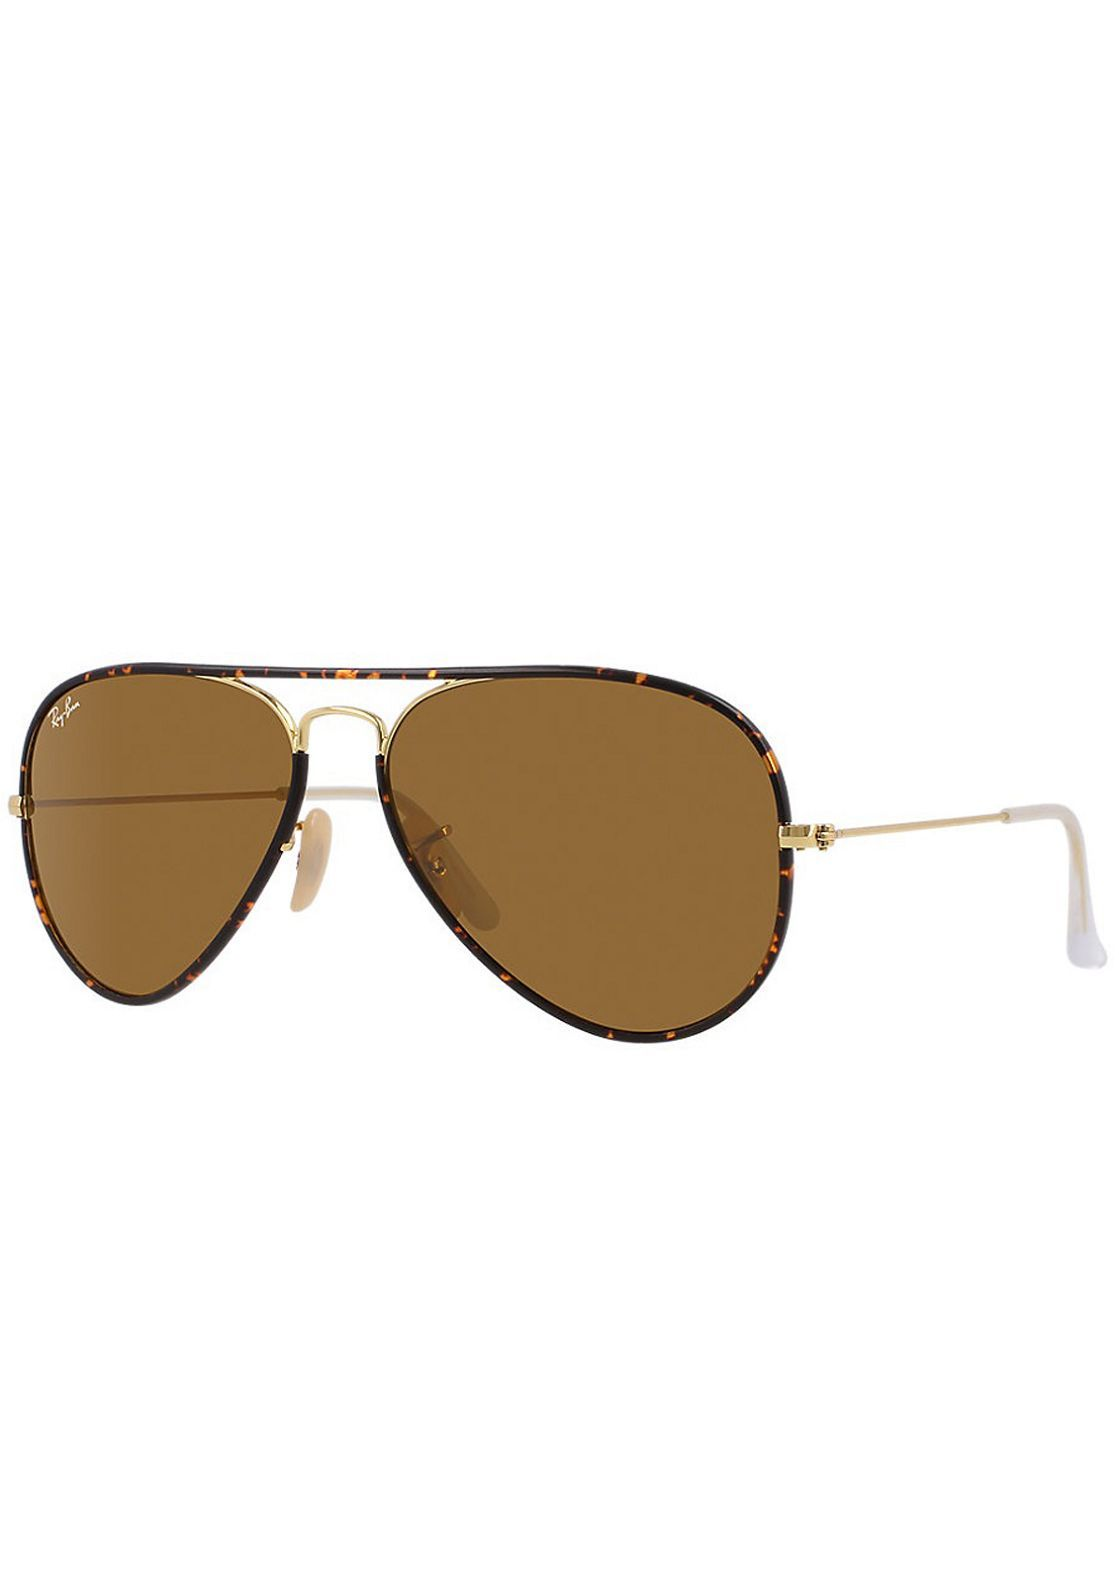 d4f695fe68 ... germany ray ban rx8715 tech eyeglasses 1158 brusched gold 53mm see this  a49e3 a2500. ray ban polarized sunglasses ...